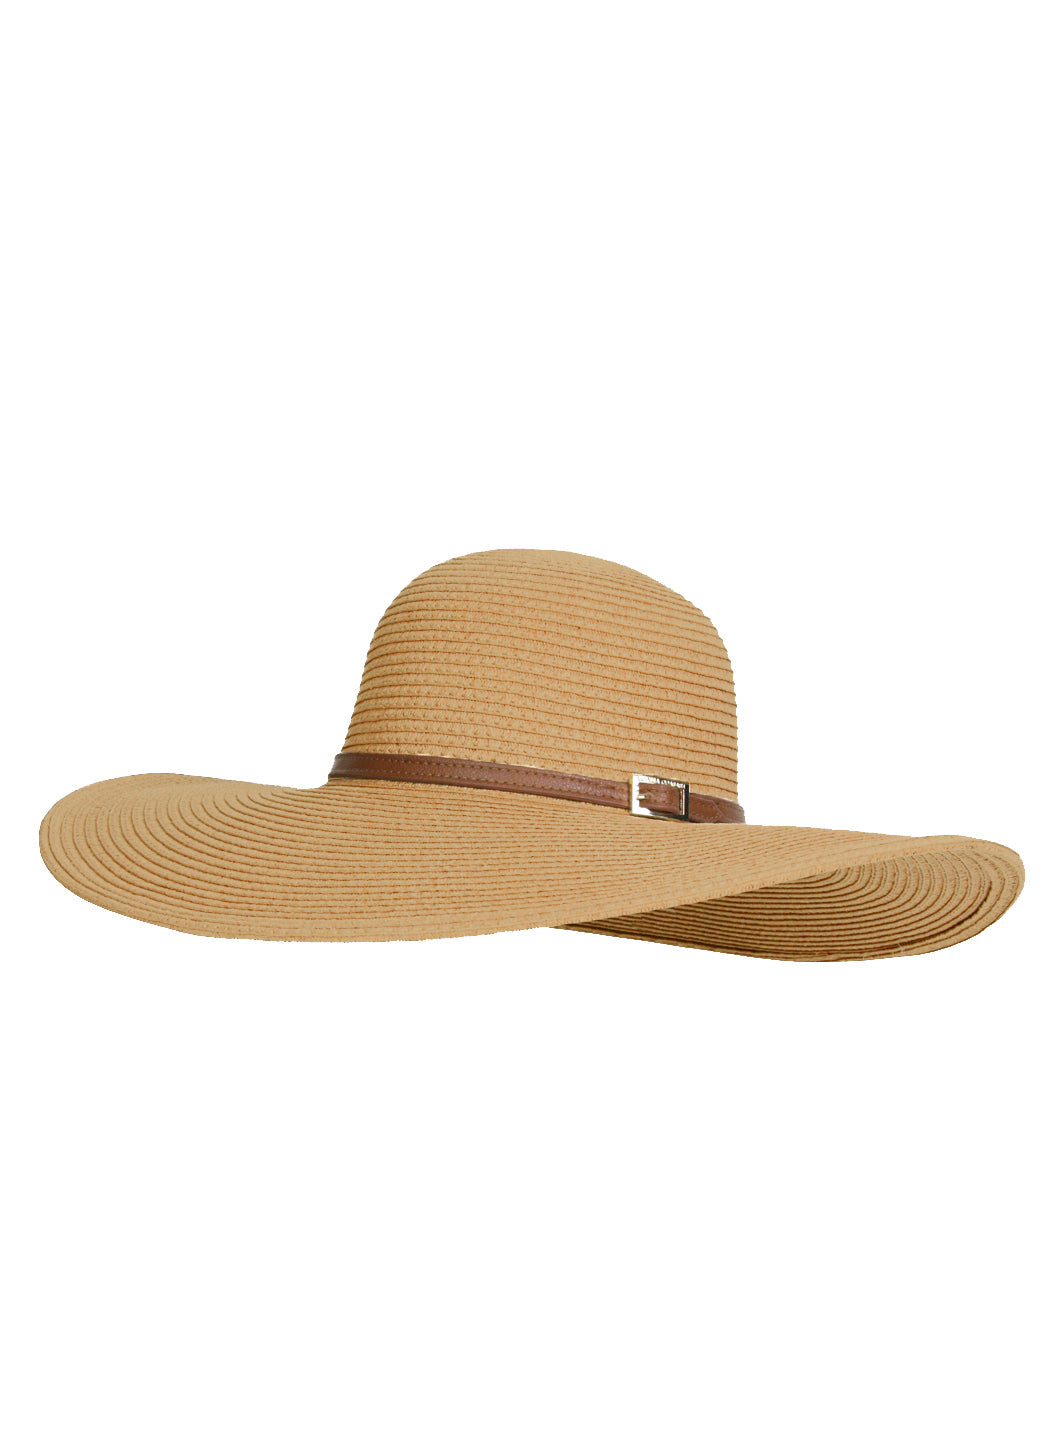 Jemima Wide Brim Beach Hat Beige